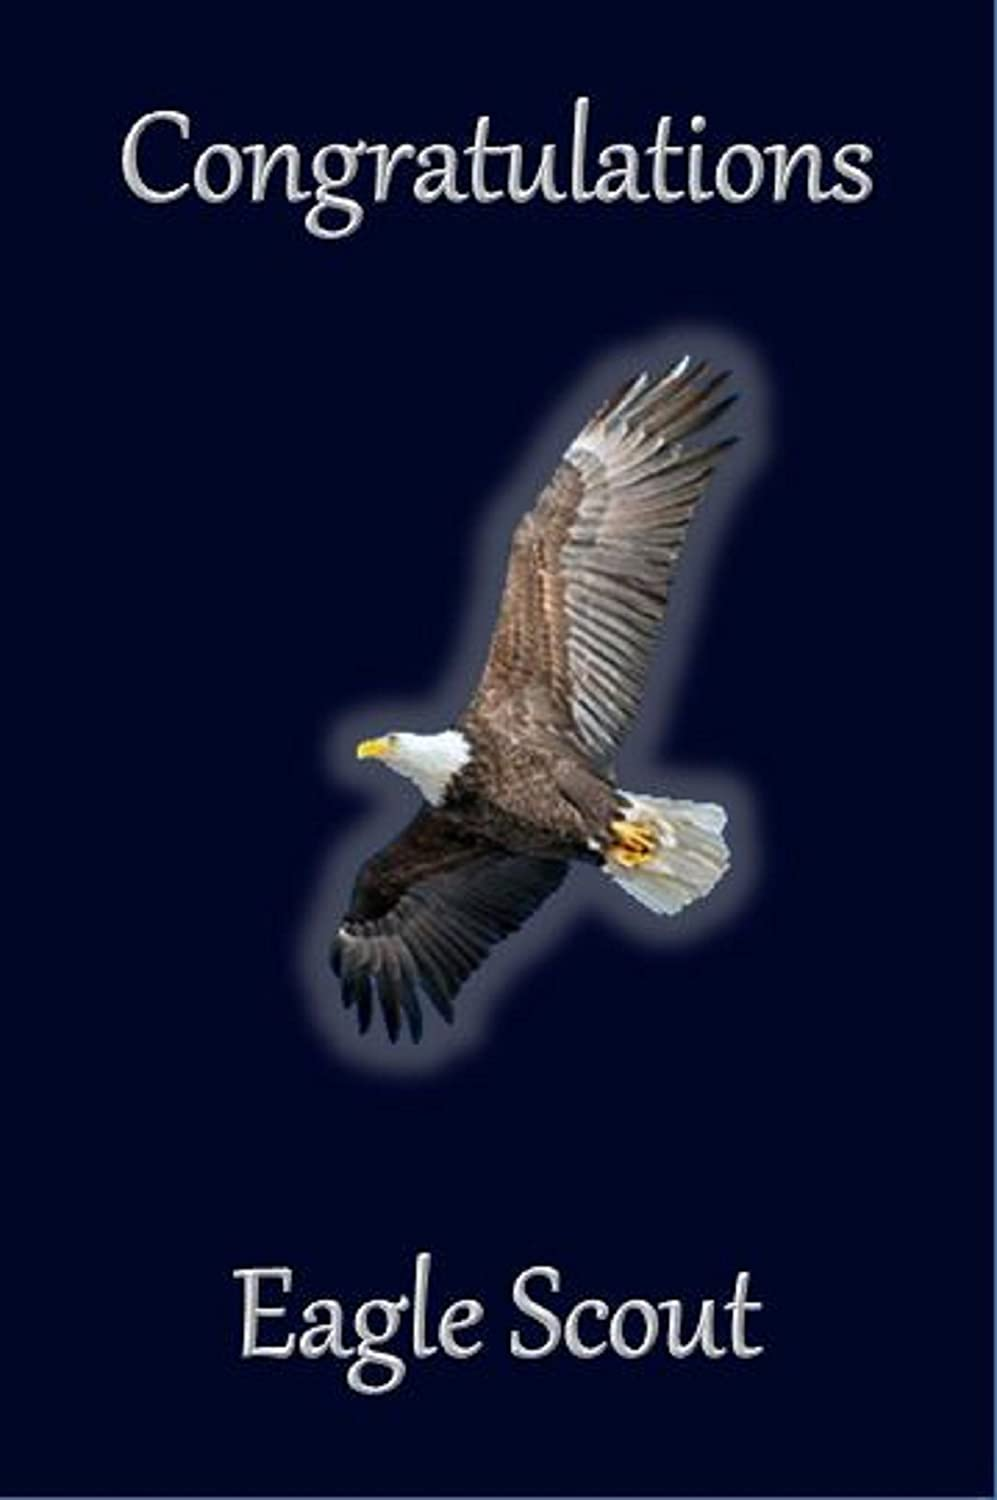 picture about Eagle Scout Congratulations Card Printable known as Eagle Scout Congratulations Card: Sparkling Eagle